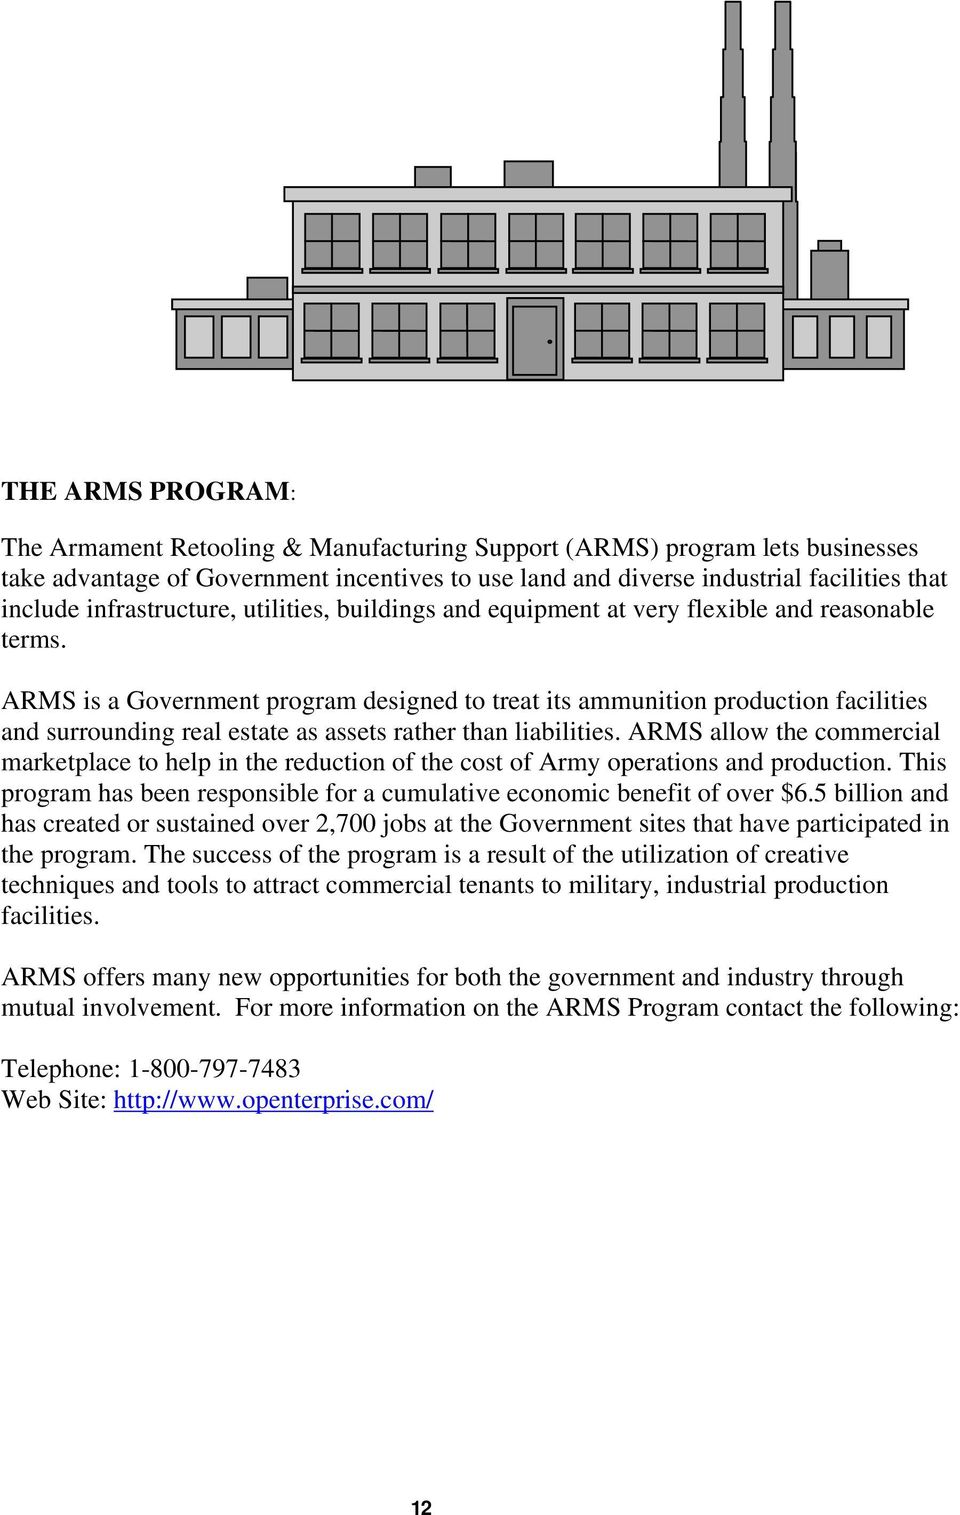 ARMS is a Government program designed to treat its ammunition production facilities and surrounding real estate as assets rather than liabilities.